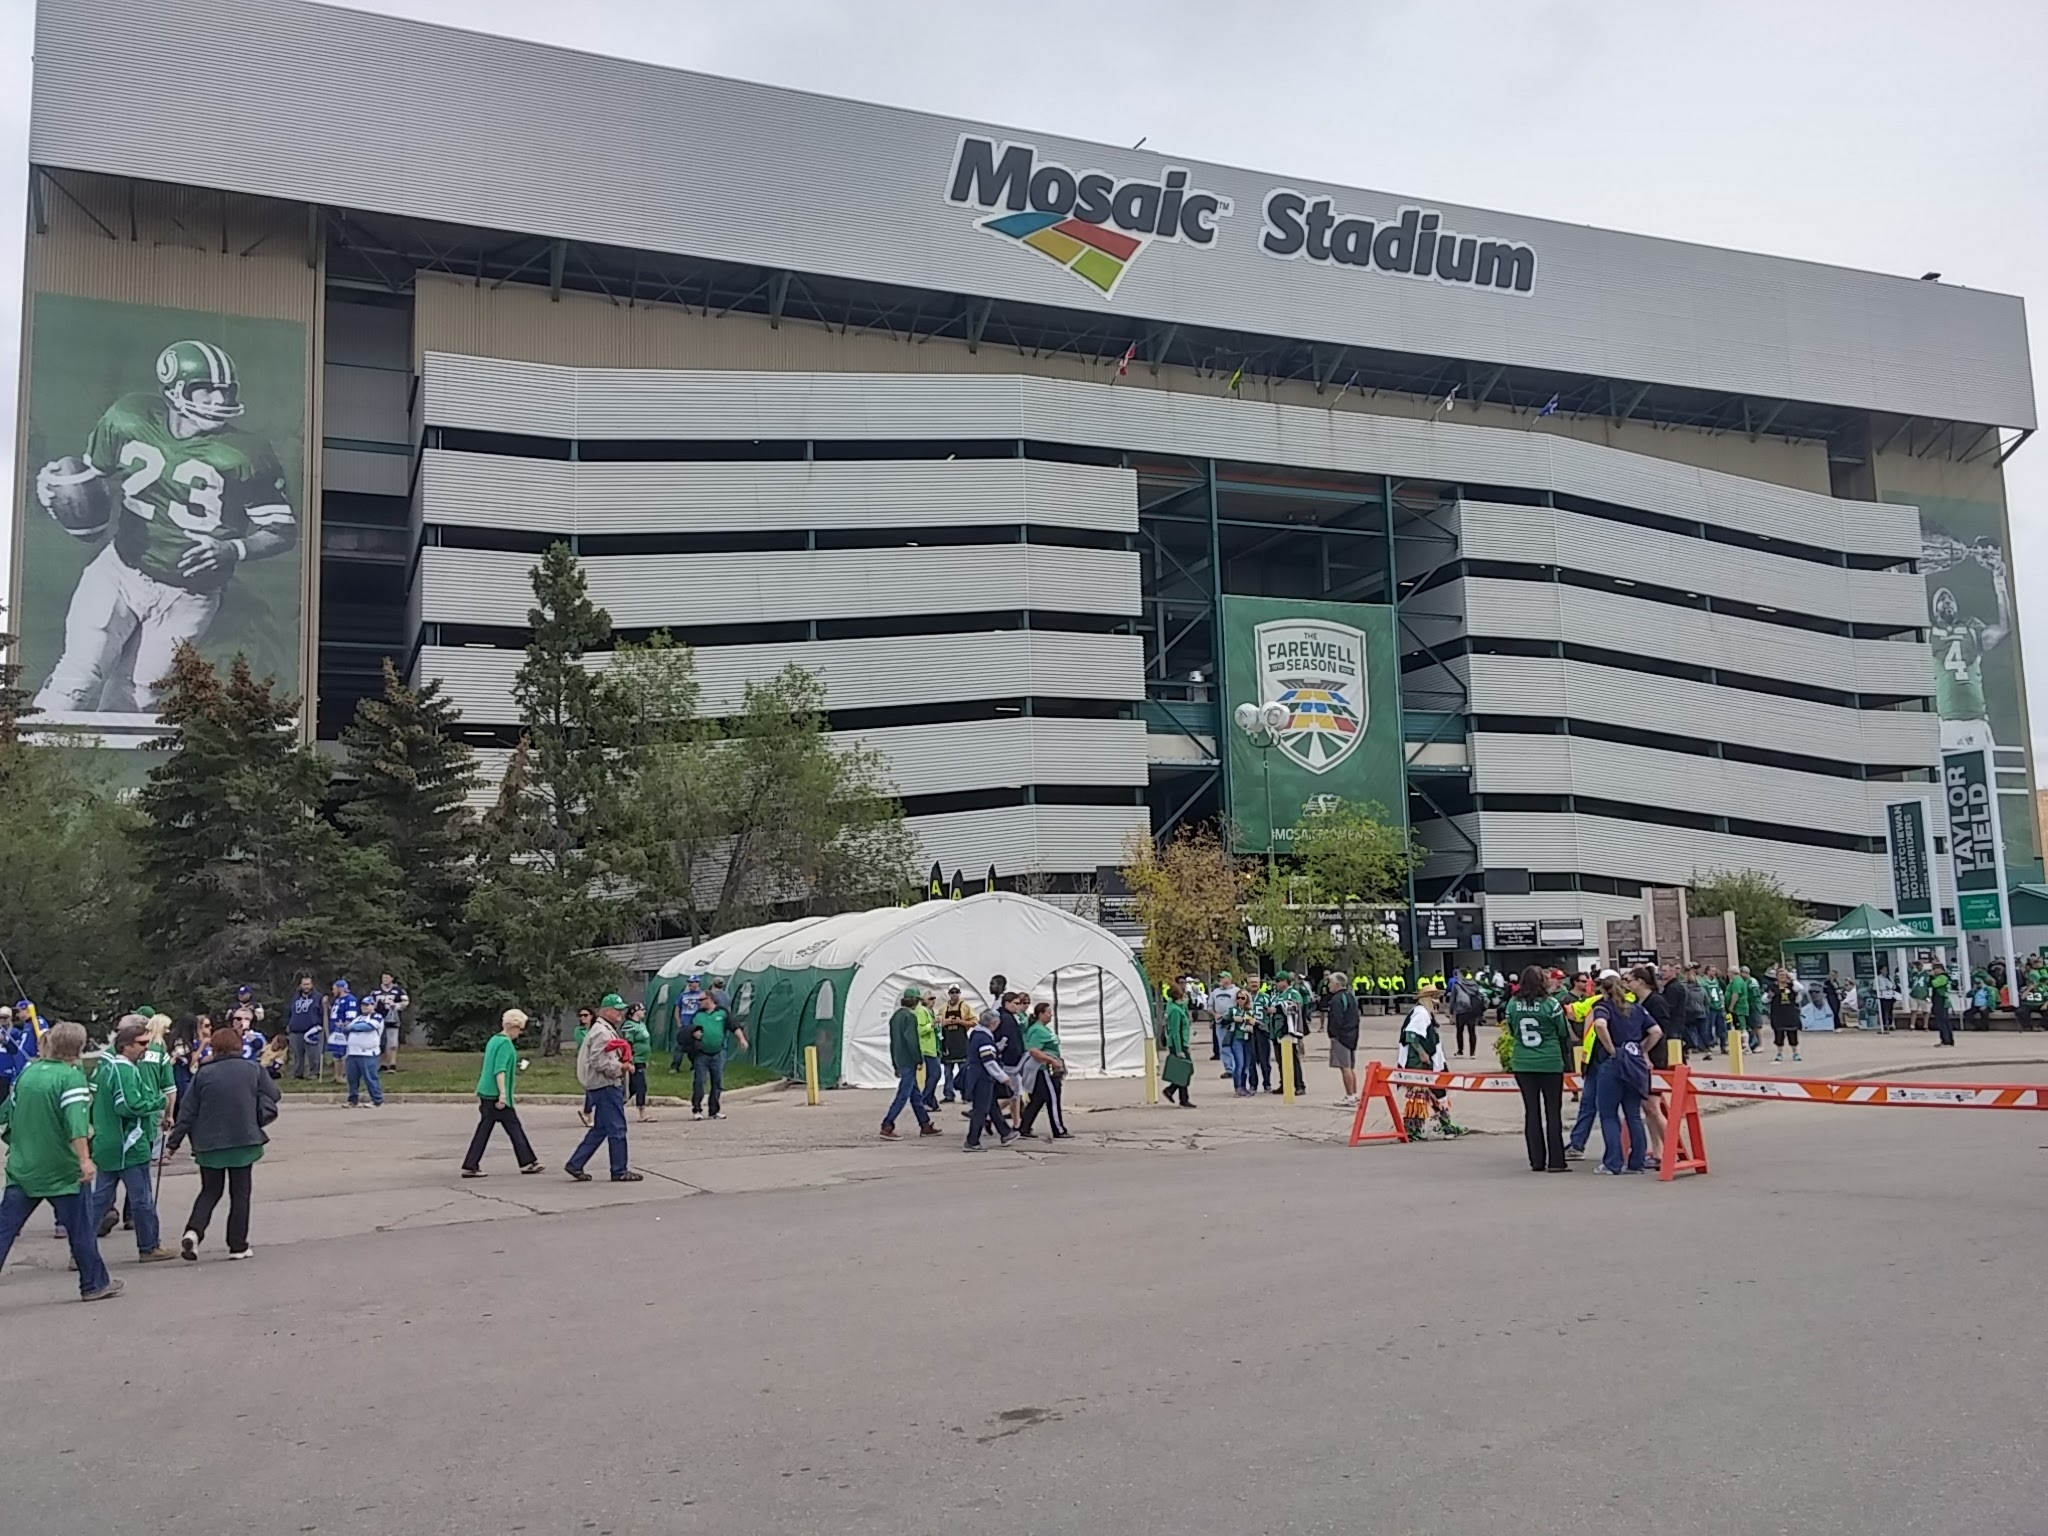 You can own a piece of old Mosaic Stadium